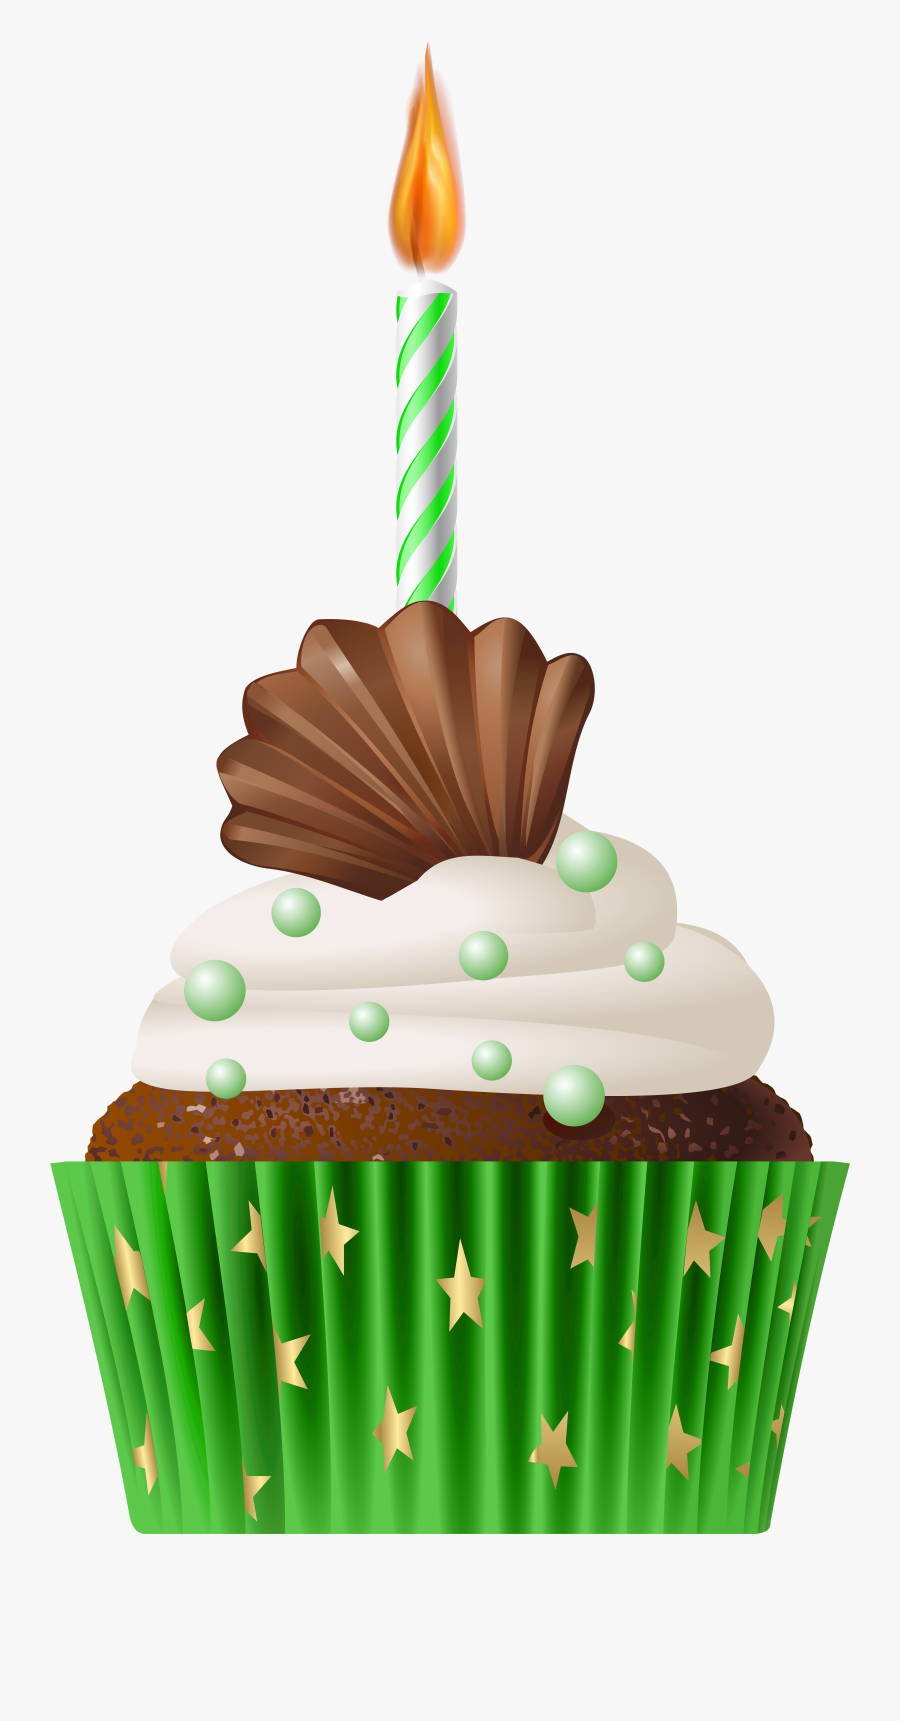 Muffin Green With Png - Birthday Muffin Png, Transparent Clipart